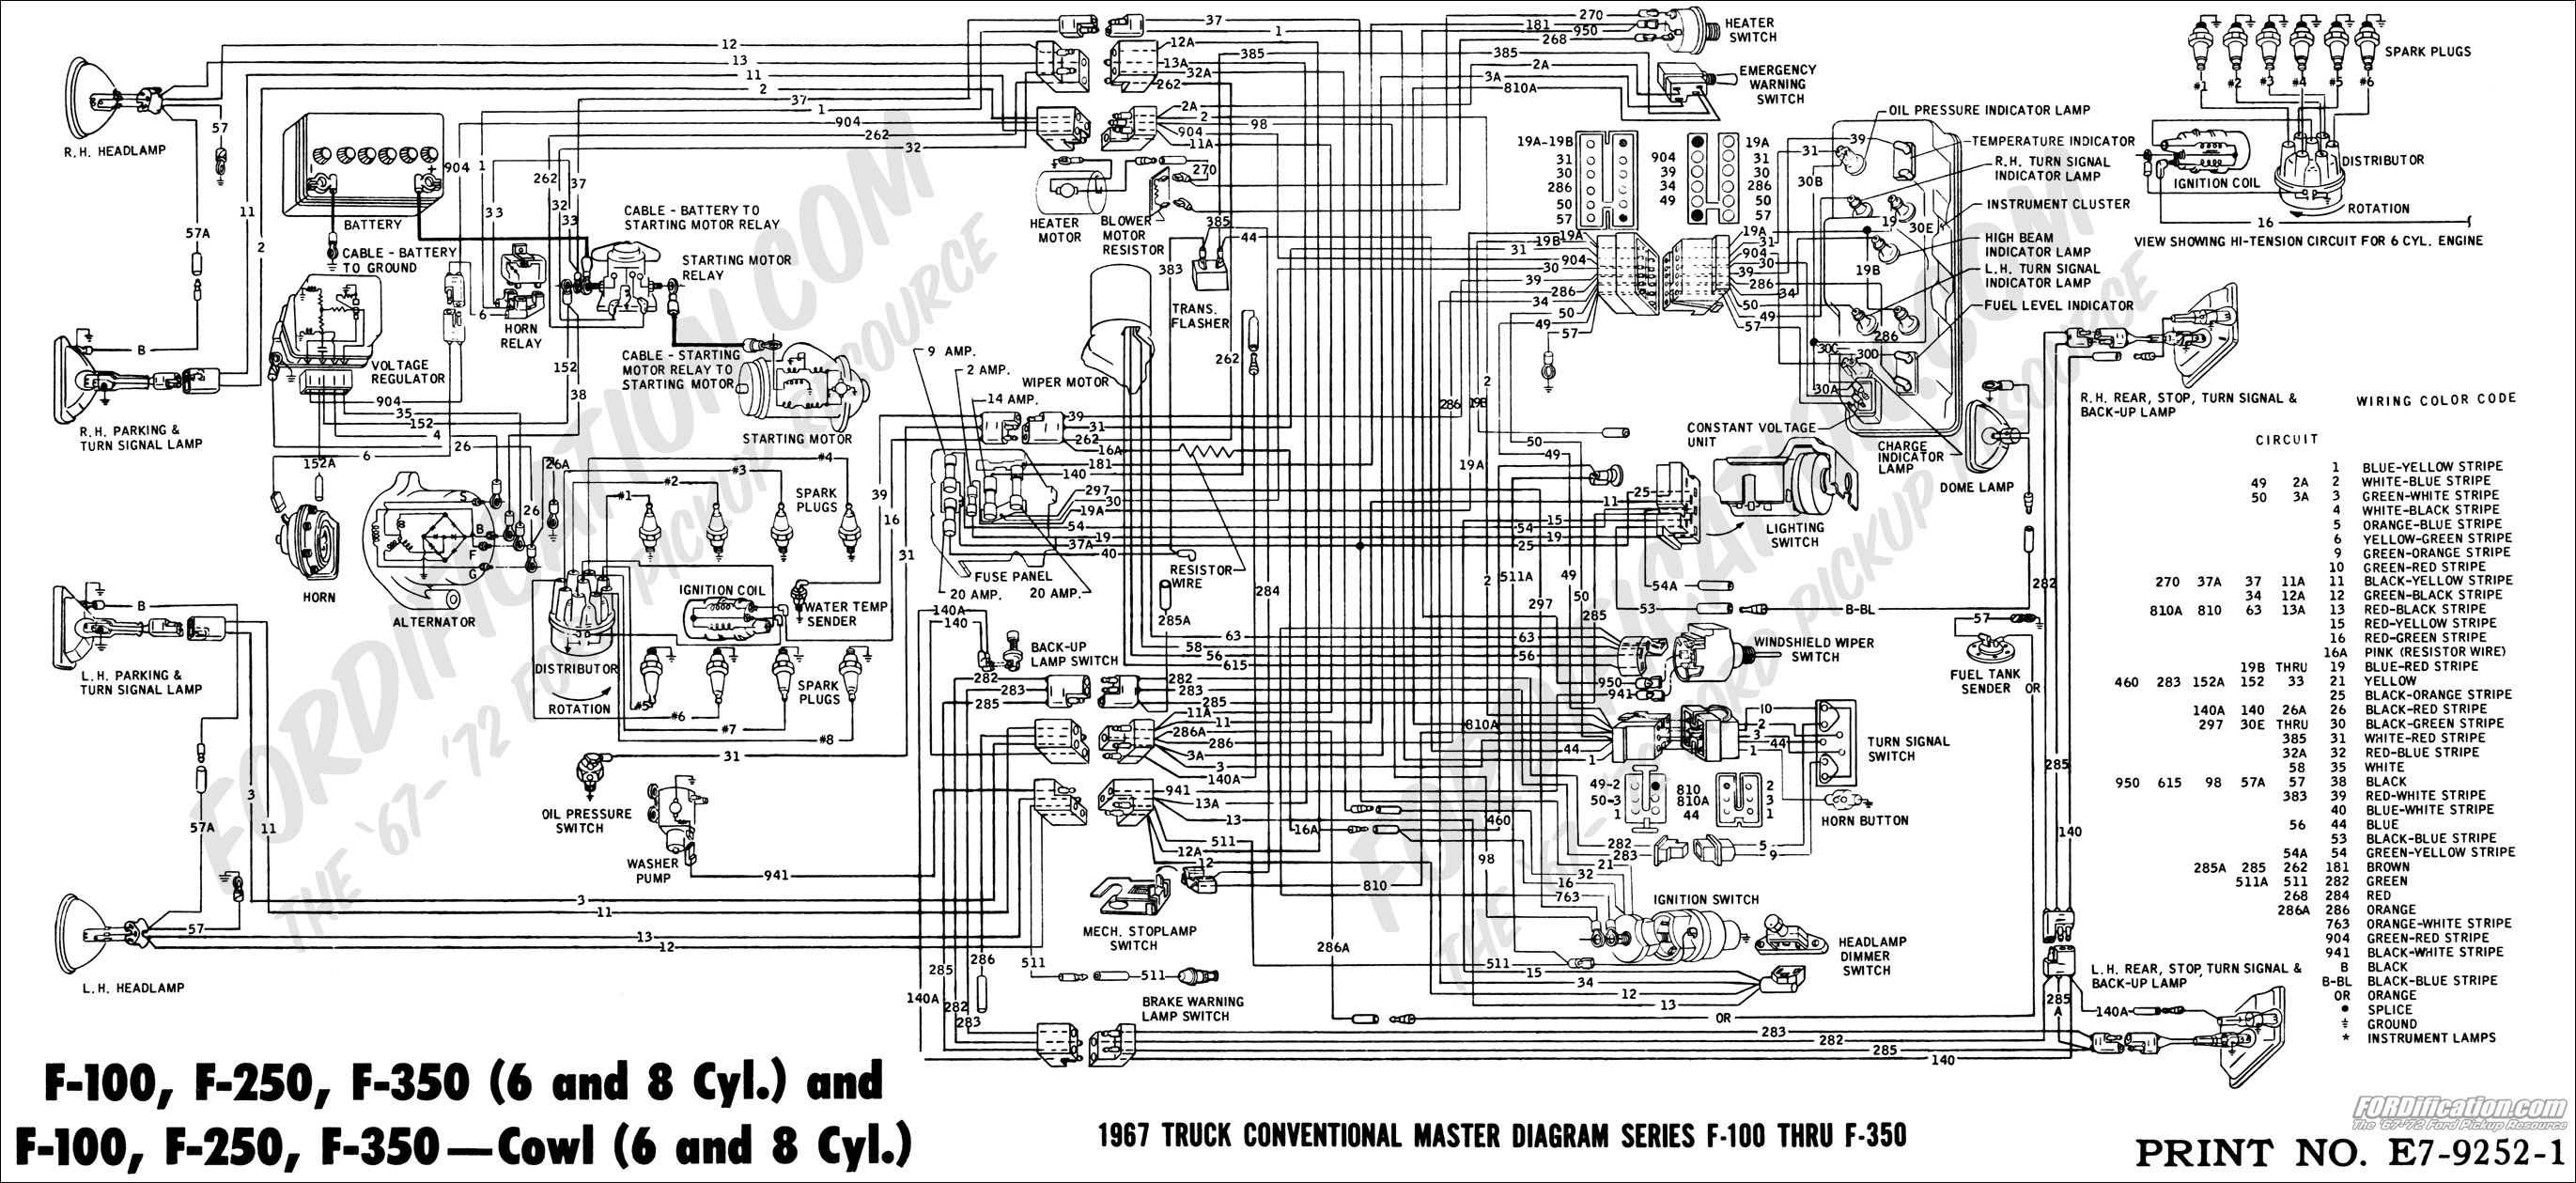 ford truck wiring diagrams detailed schematic diagrams rh 4rmotorsports com 66 ford truck wiring diagram pdf Ford F-150 Wiring Diagram